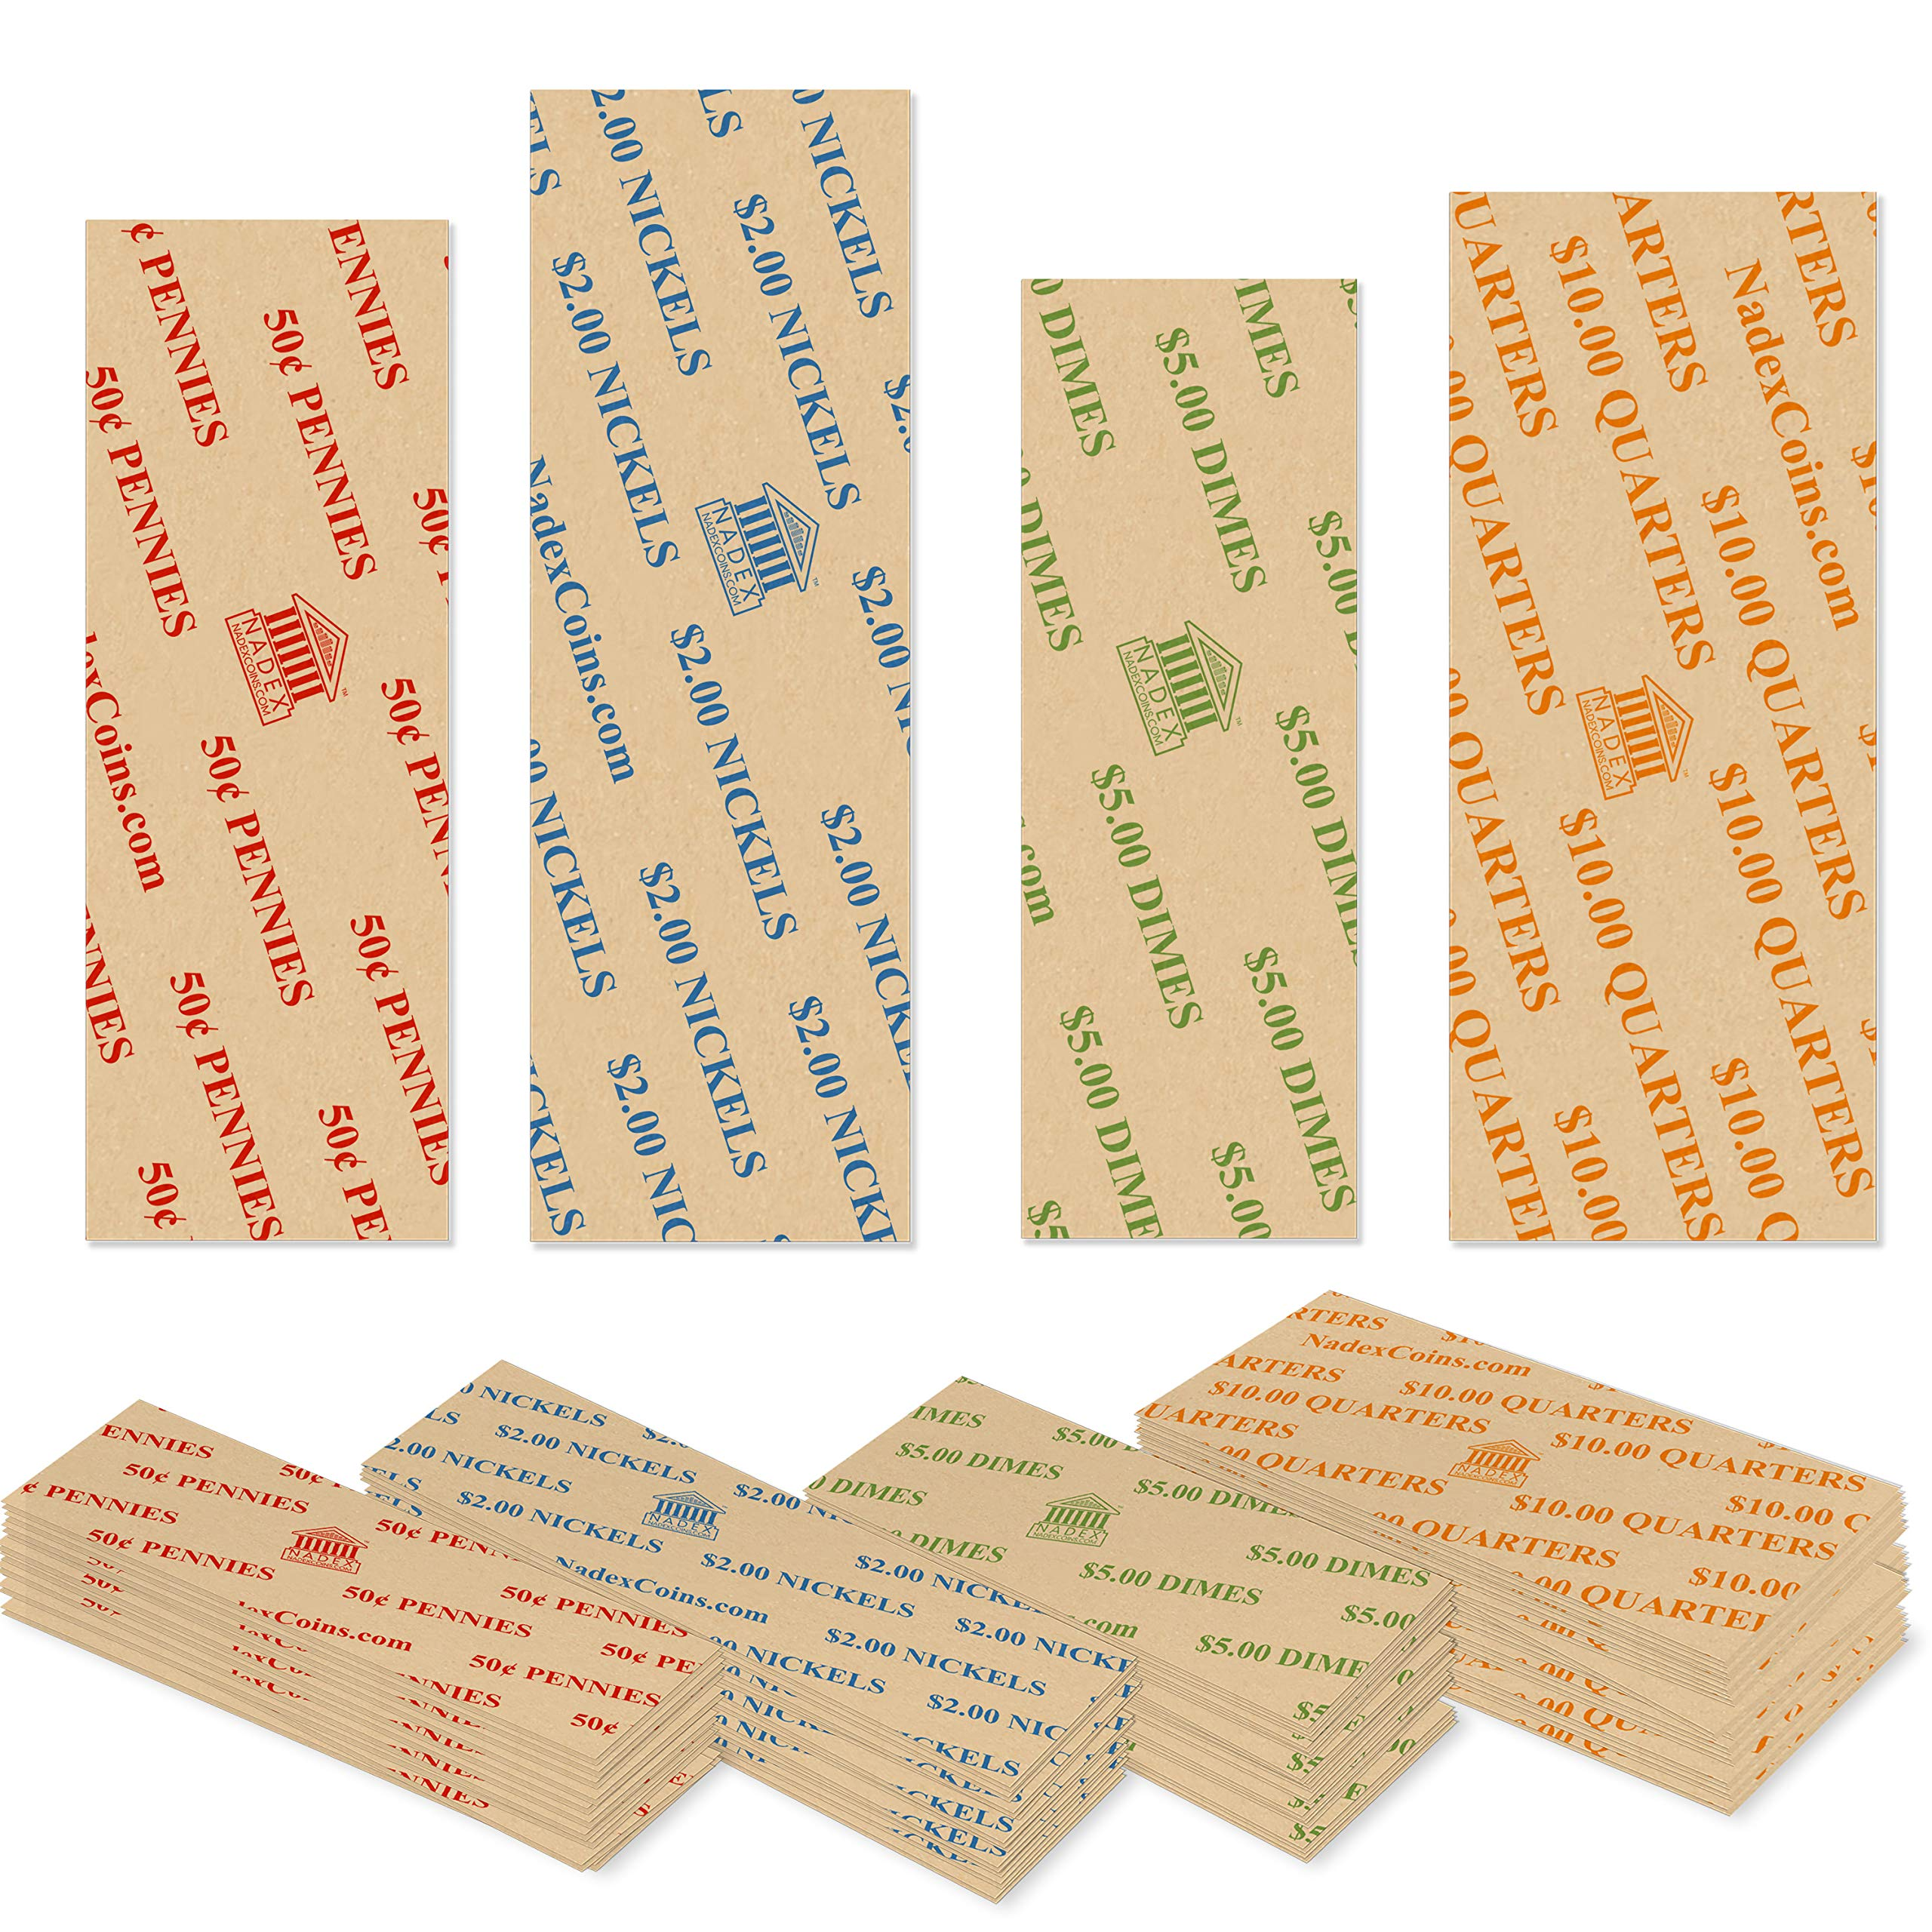 1000 Coin Roll Wrappers for U.S. Coins -125 Each of Penny, Nickel, Dime and Quarter Wrappers Separated and Color Coded to ABA Standards, Classic Style